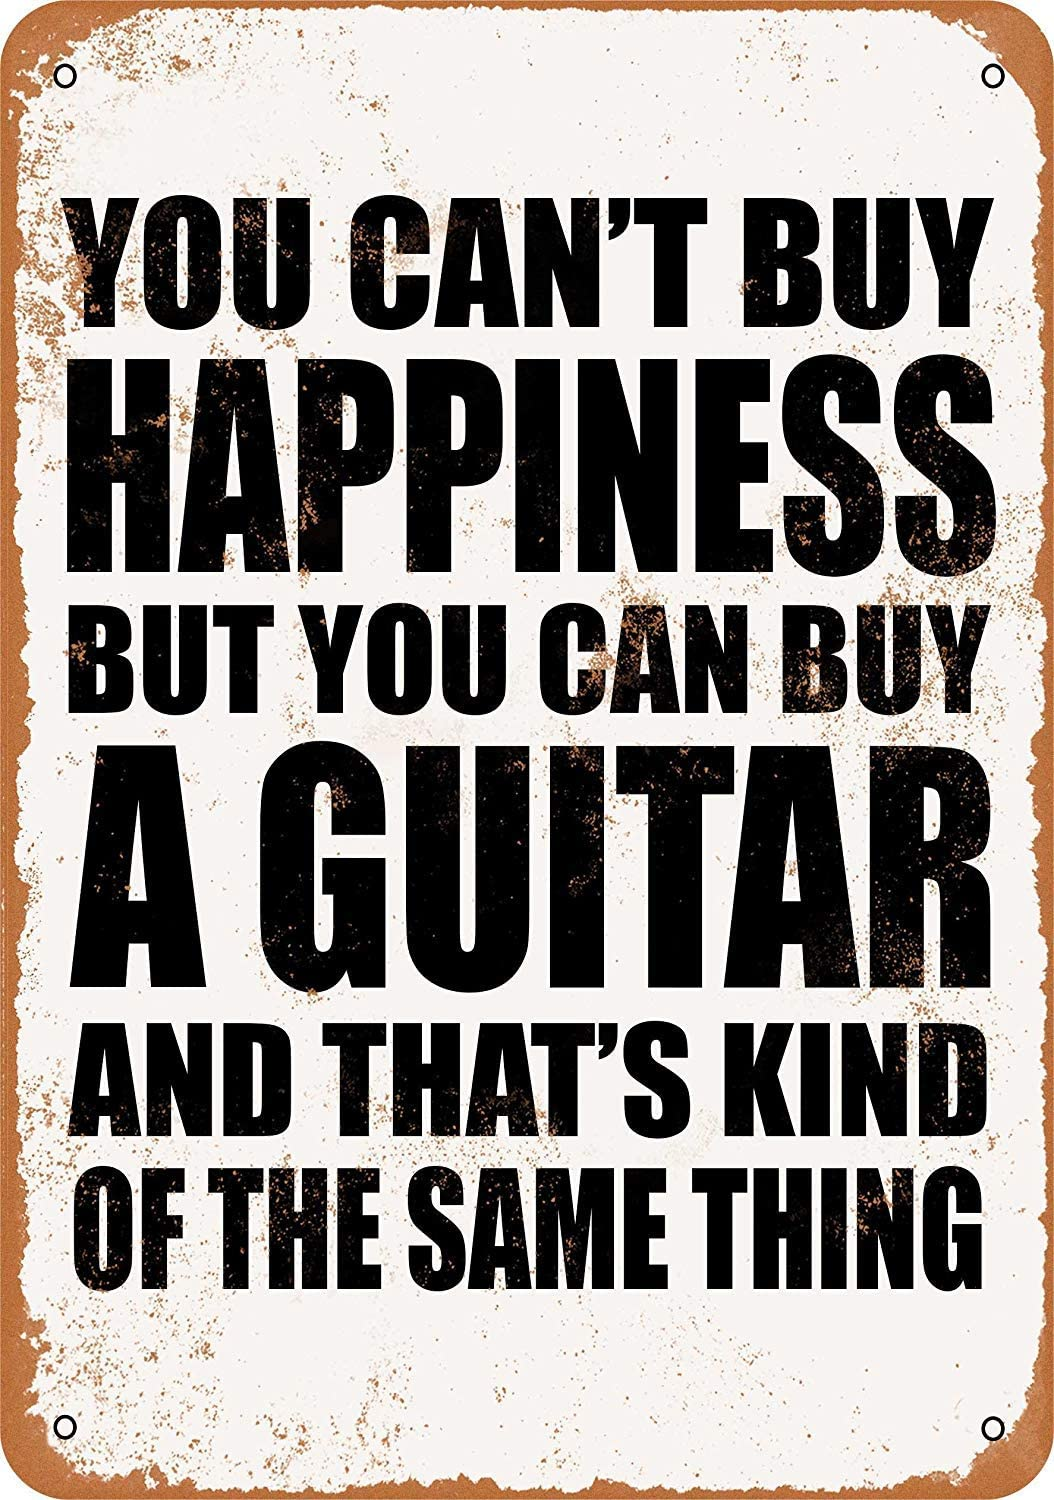 Anwei Signs 8 x 12 Tin Sign - You Can't Buy Happiness But You Can Buy a Guitar - Metal Sign Vintage Look Garage Man Cave Retro Wall Decor